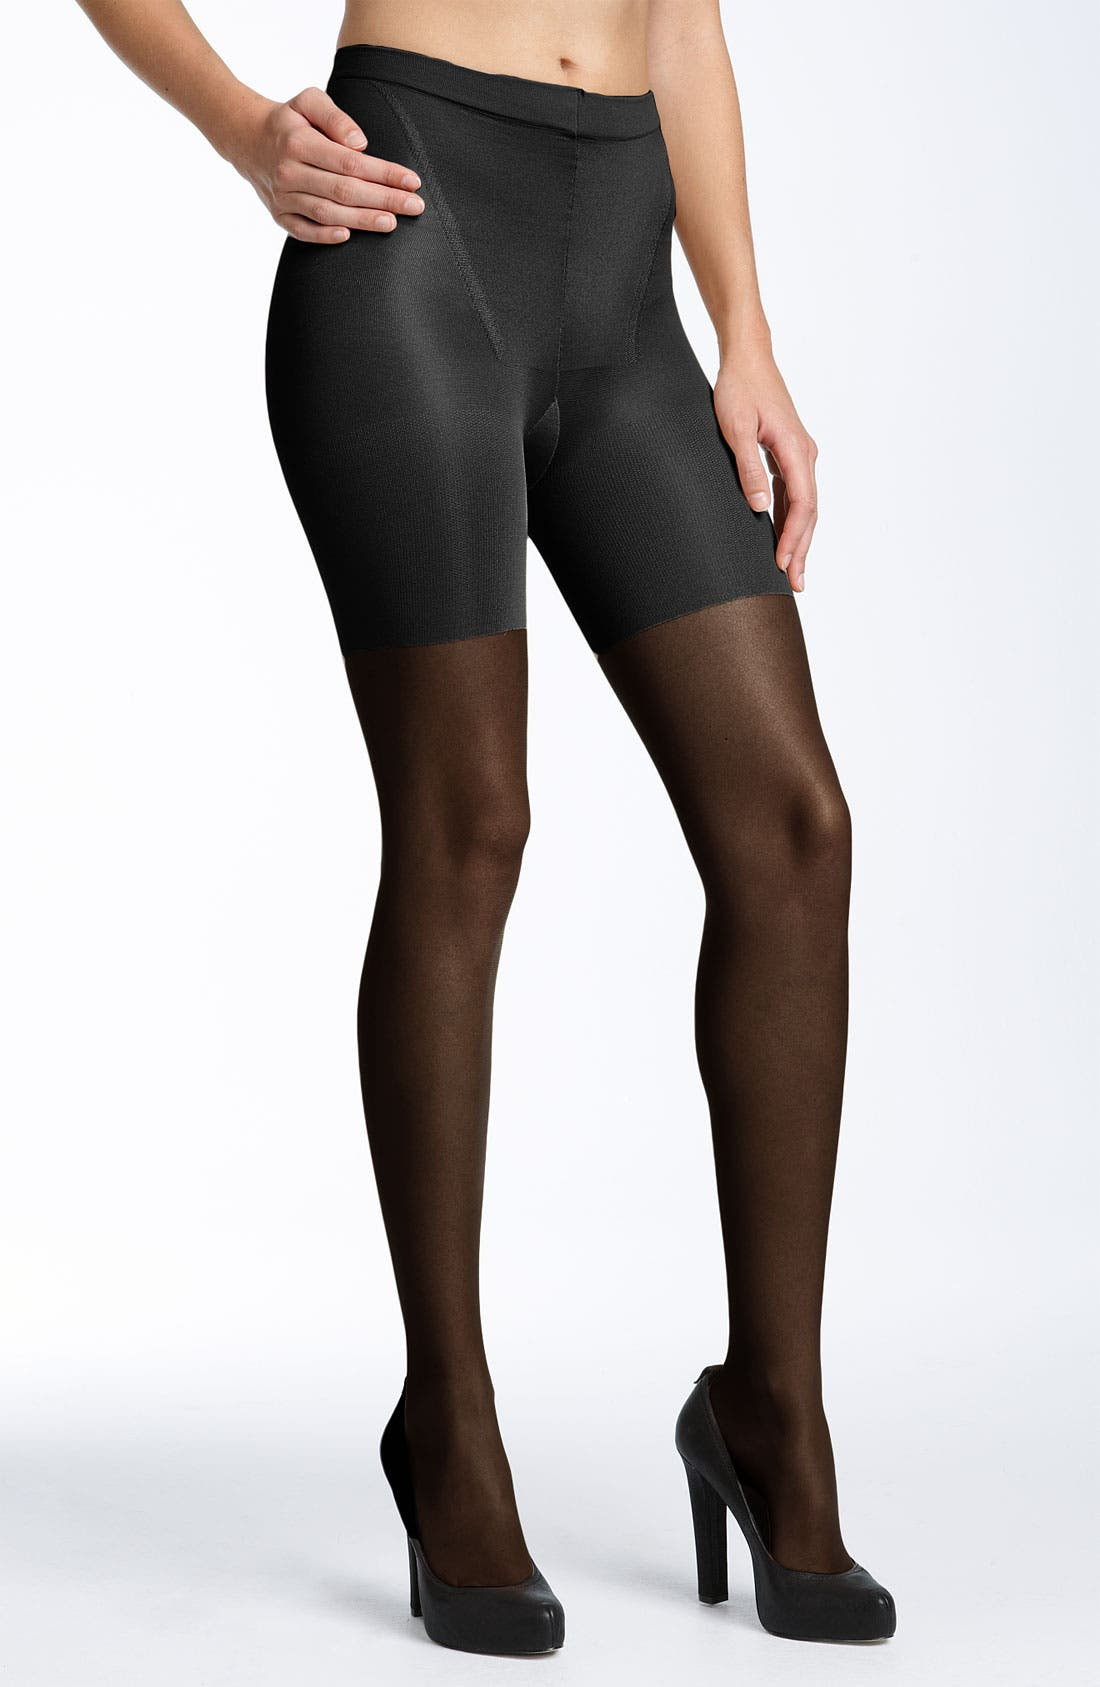 Alternate Image 1 Selected - SPANX® 'Original' Sheers